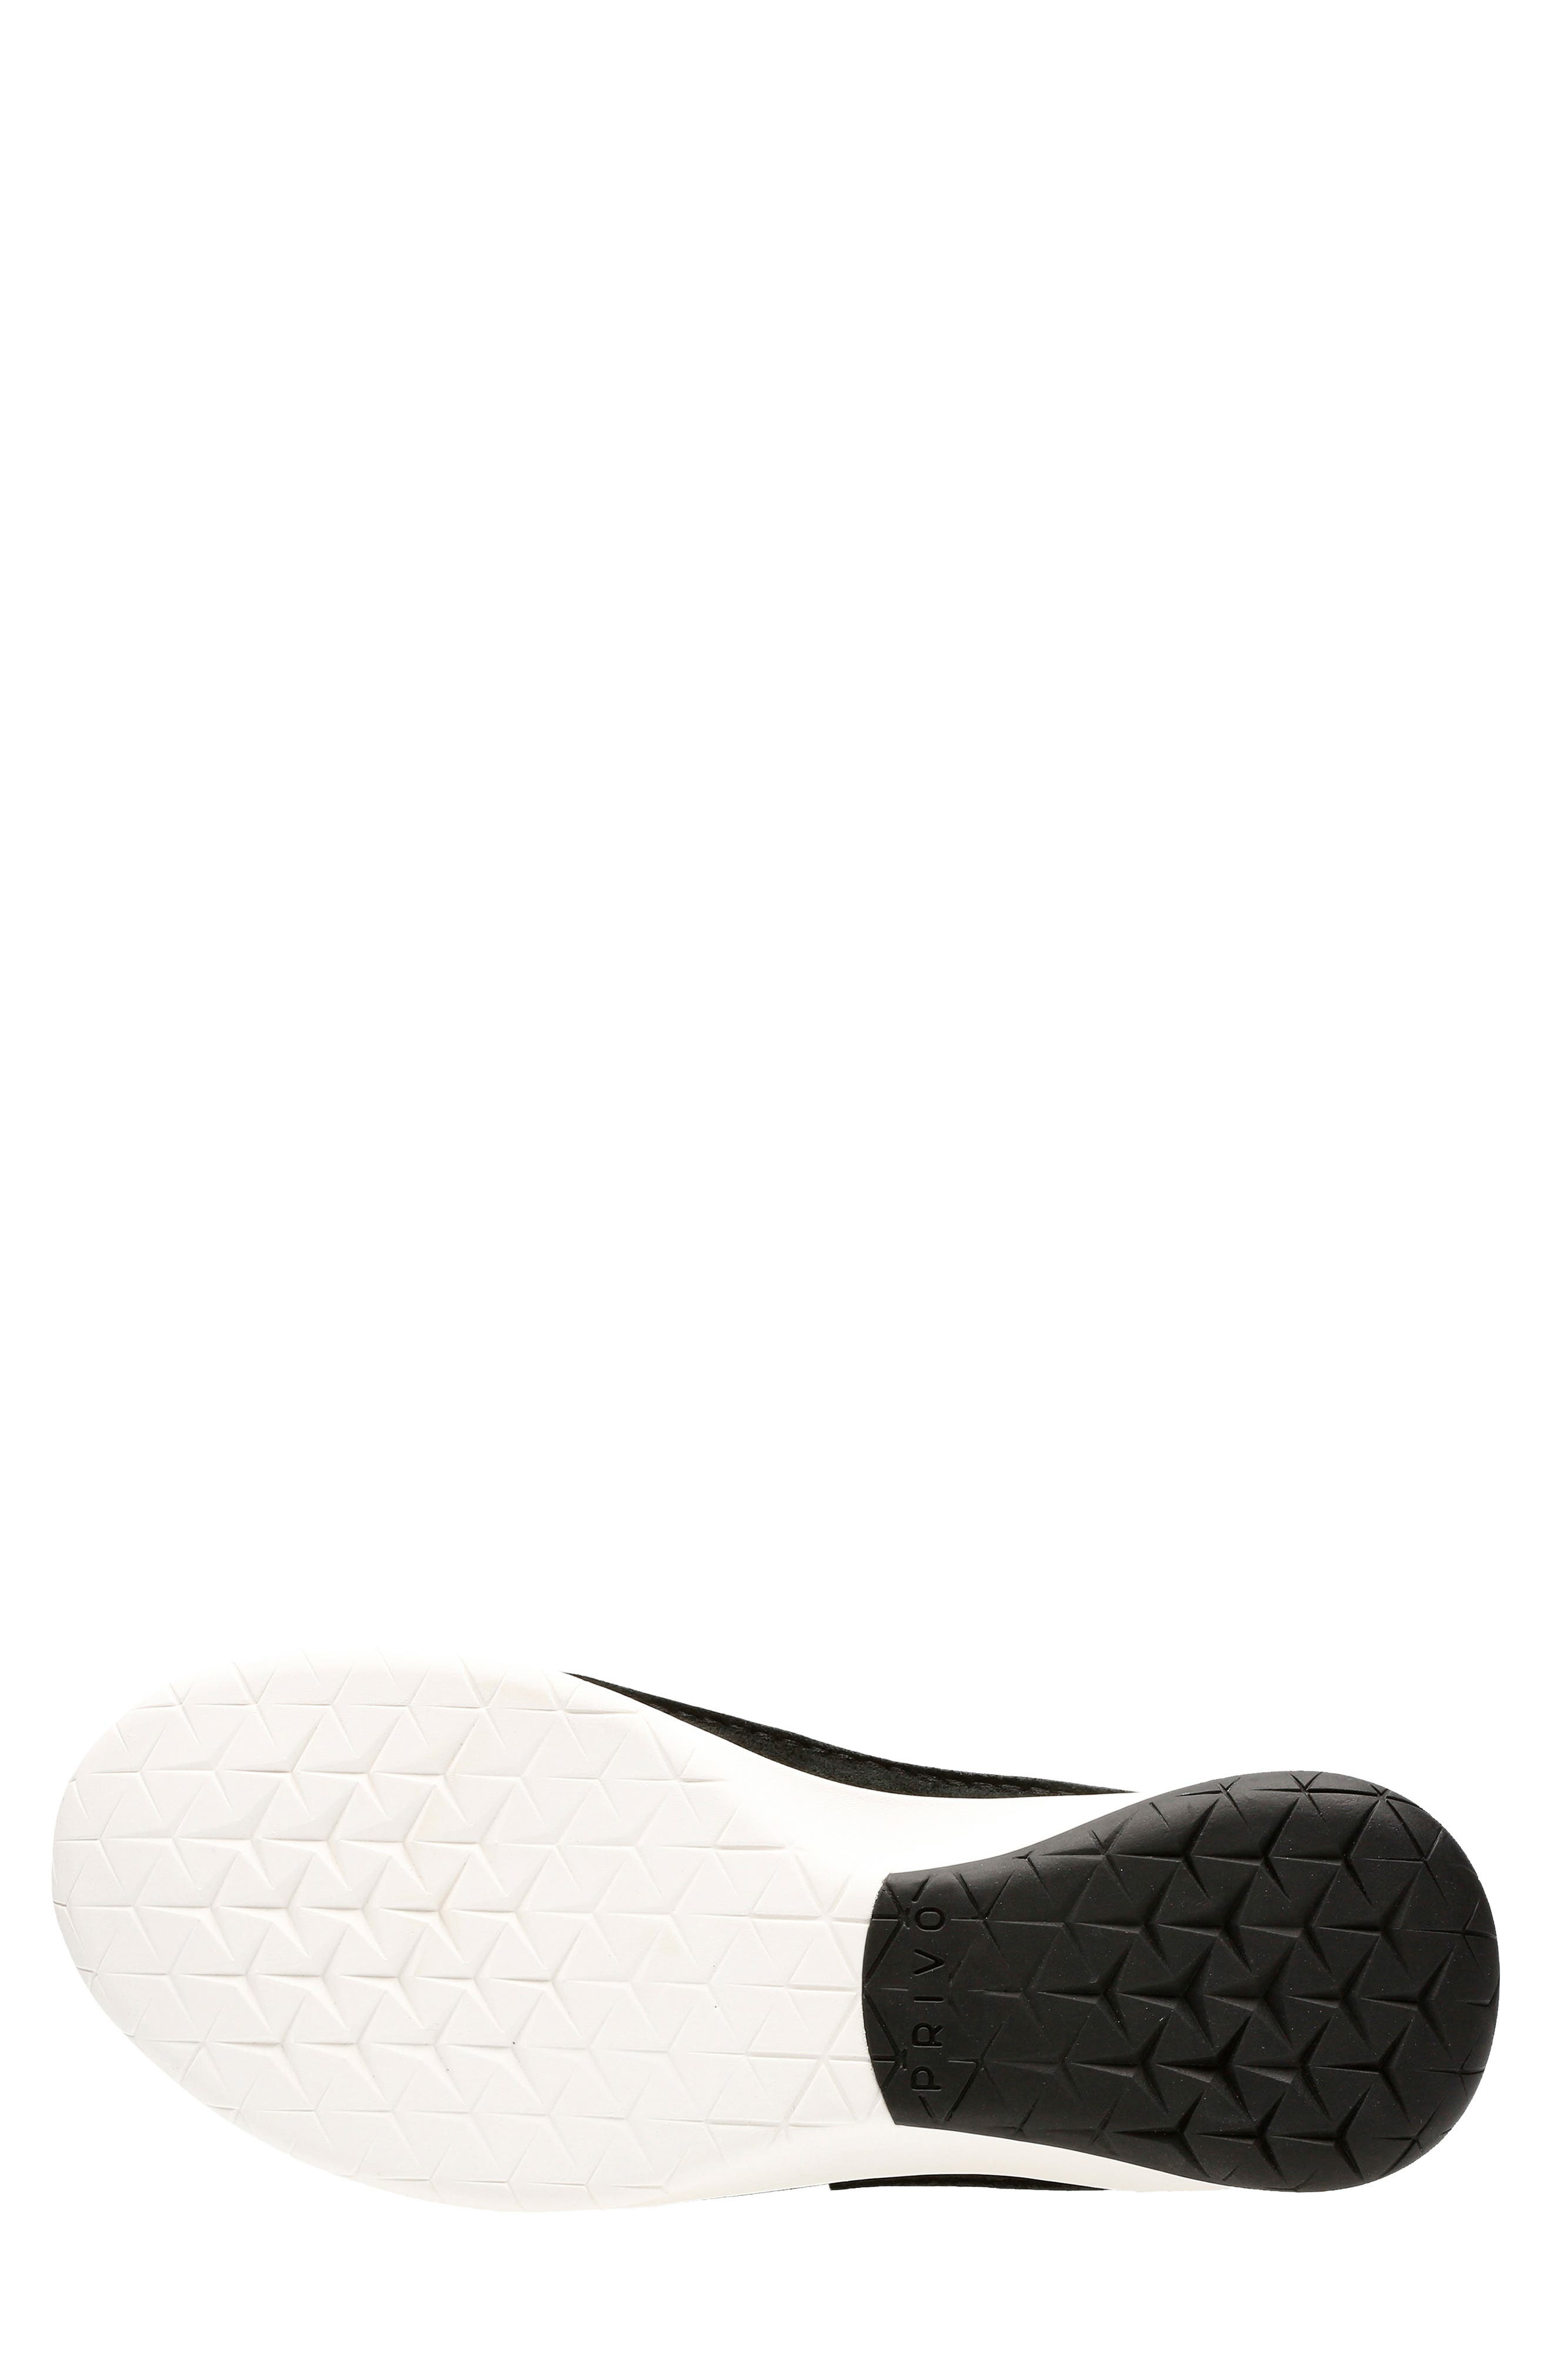 CLARKS<SUP>®</SUP>, Privolution Lo Sneaker, Alternate thumbnail 5, color, 003